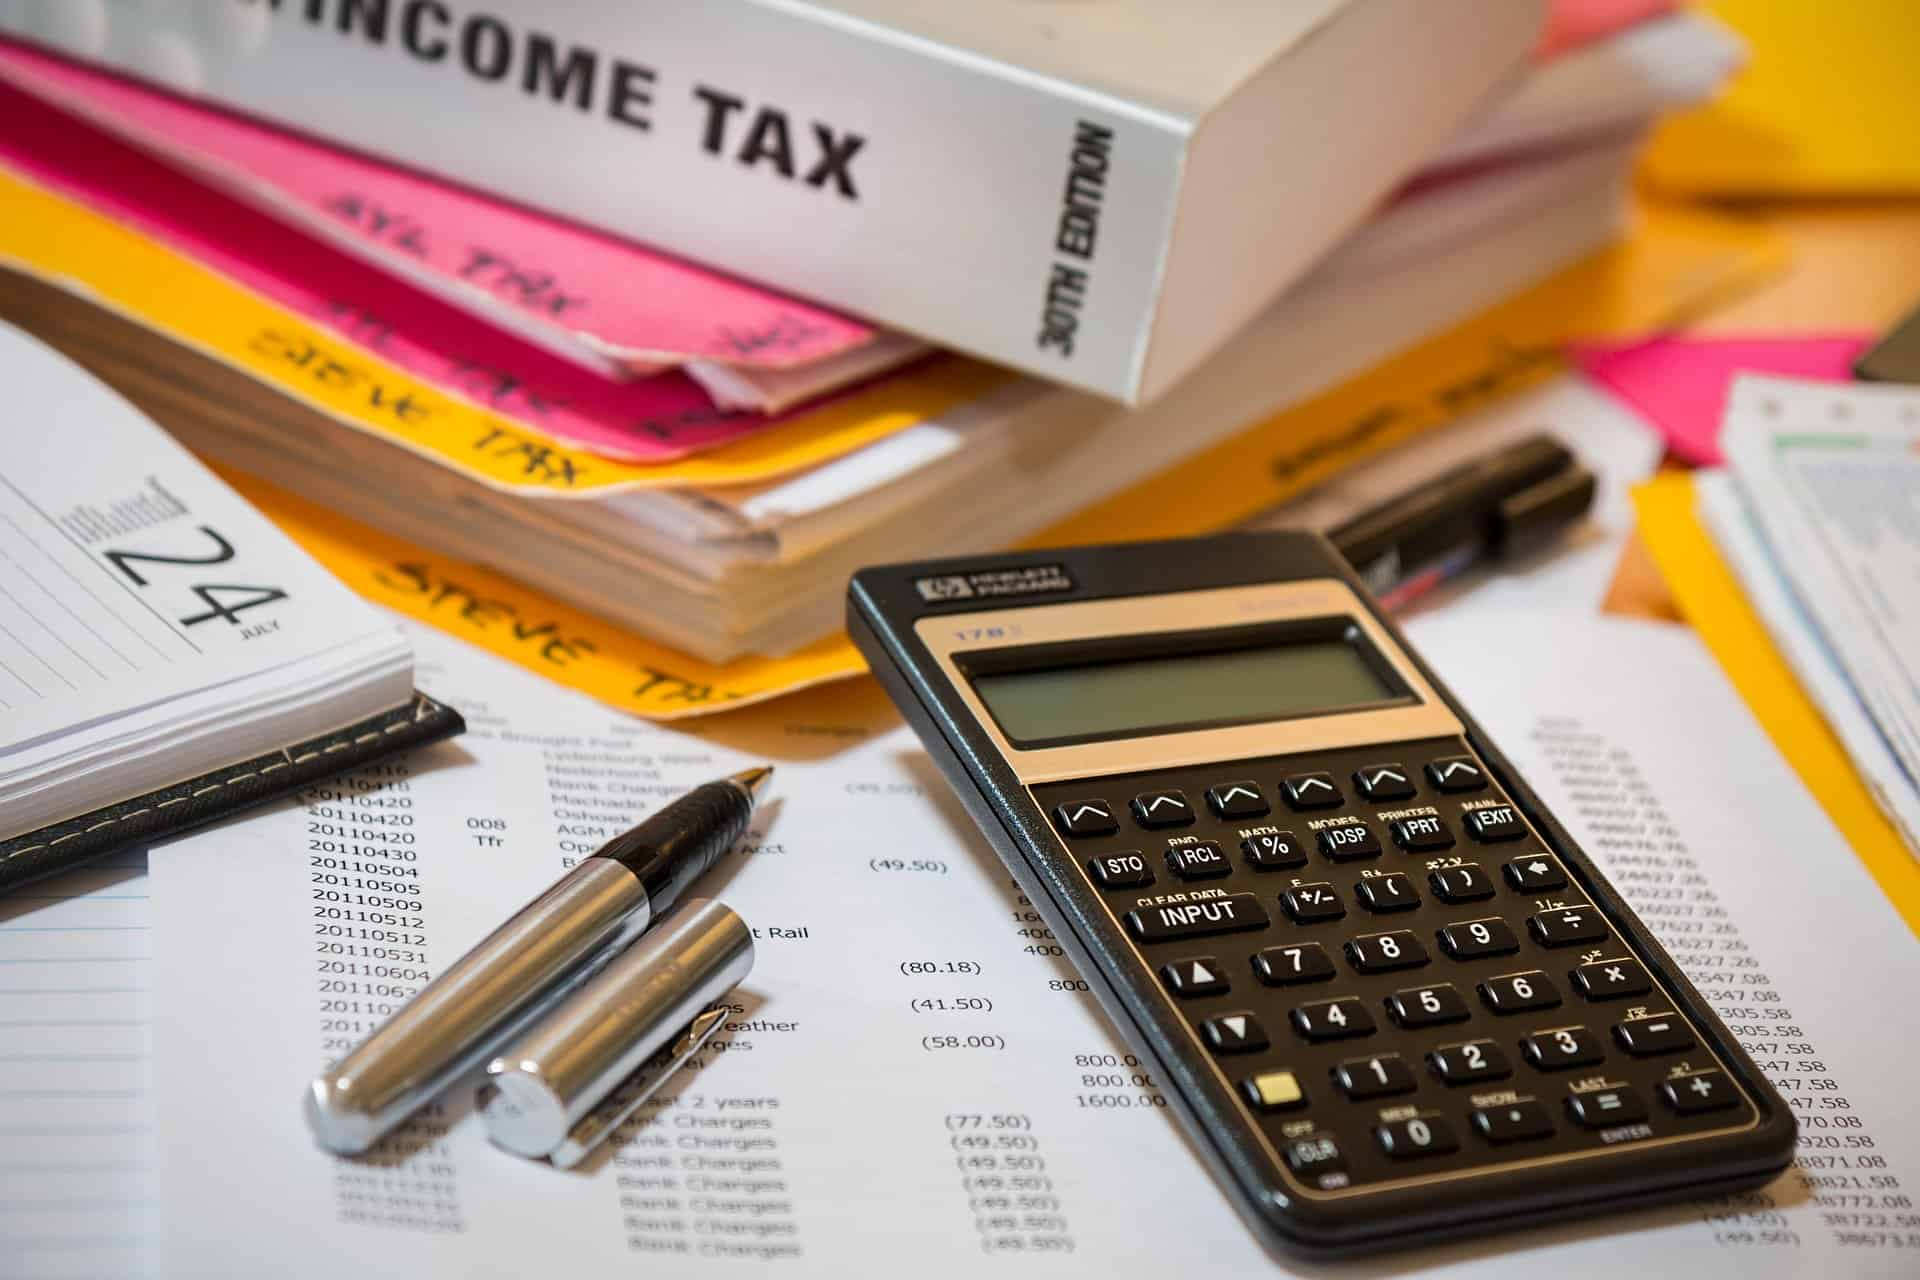 Accounting for Withholding Tax is an important function of many accounting jobs.